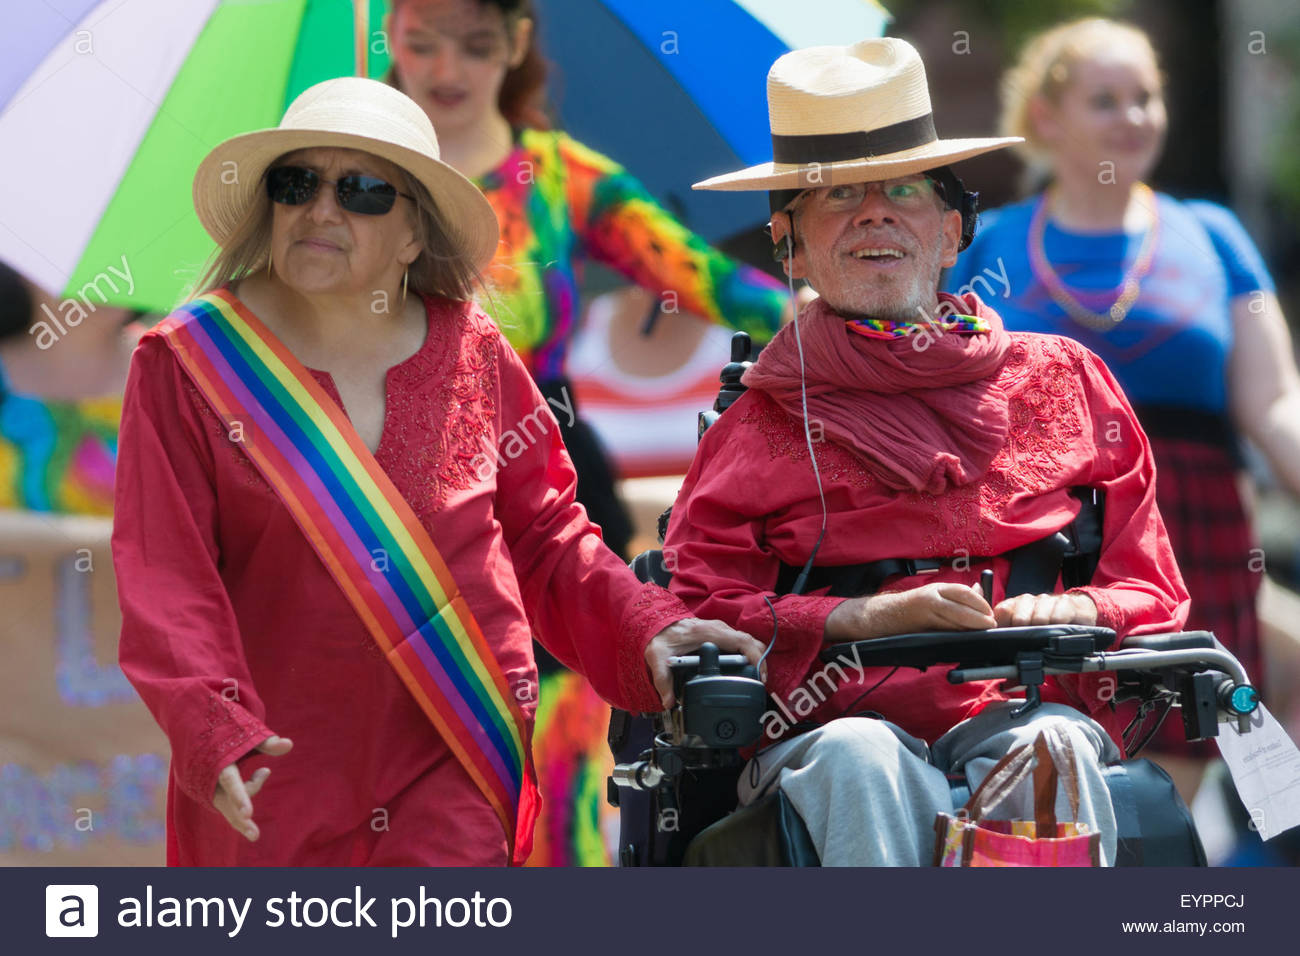 Tim Louis, municipal activist and COPE co-chair, participated in Vancouver's Pride Parade, and is seen smiling - Stock Image